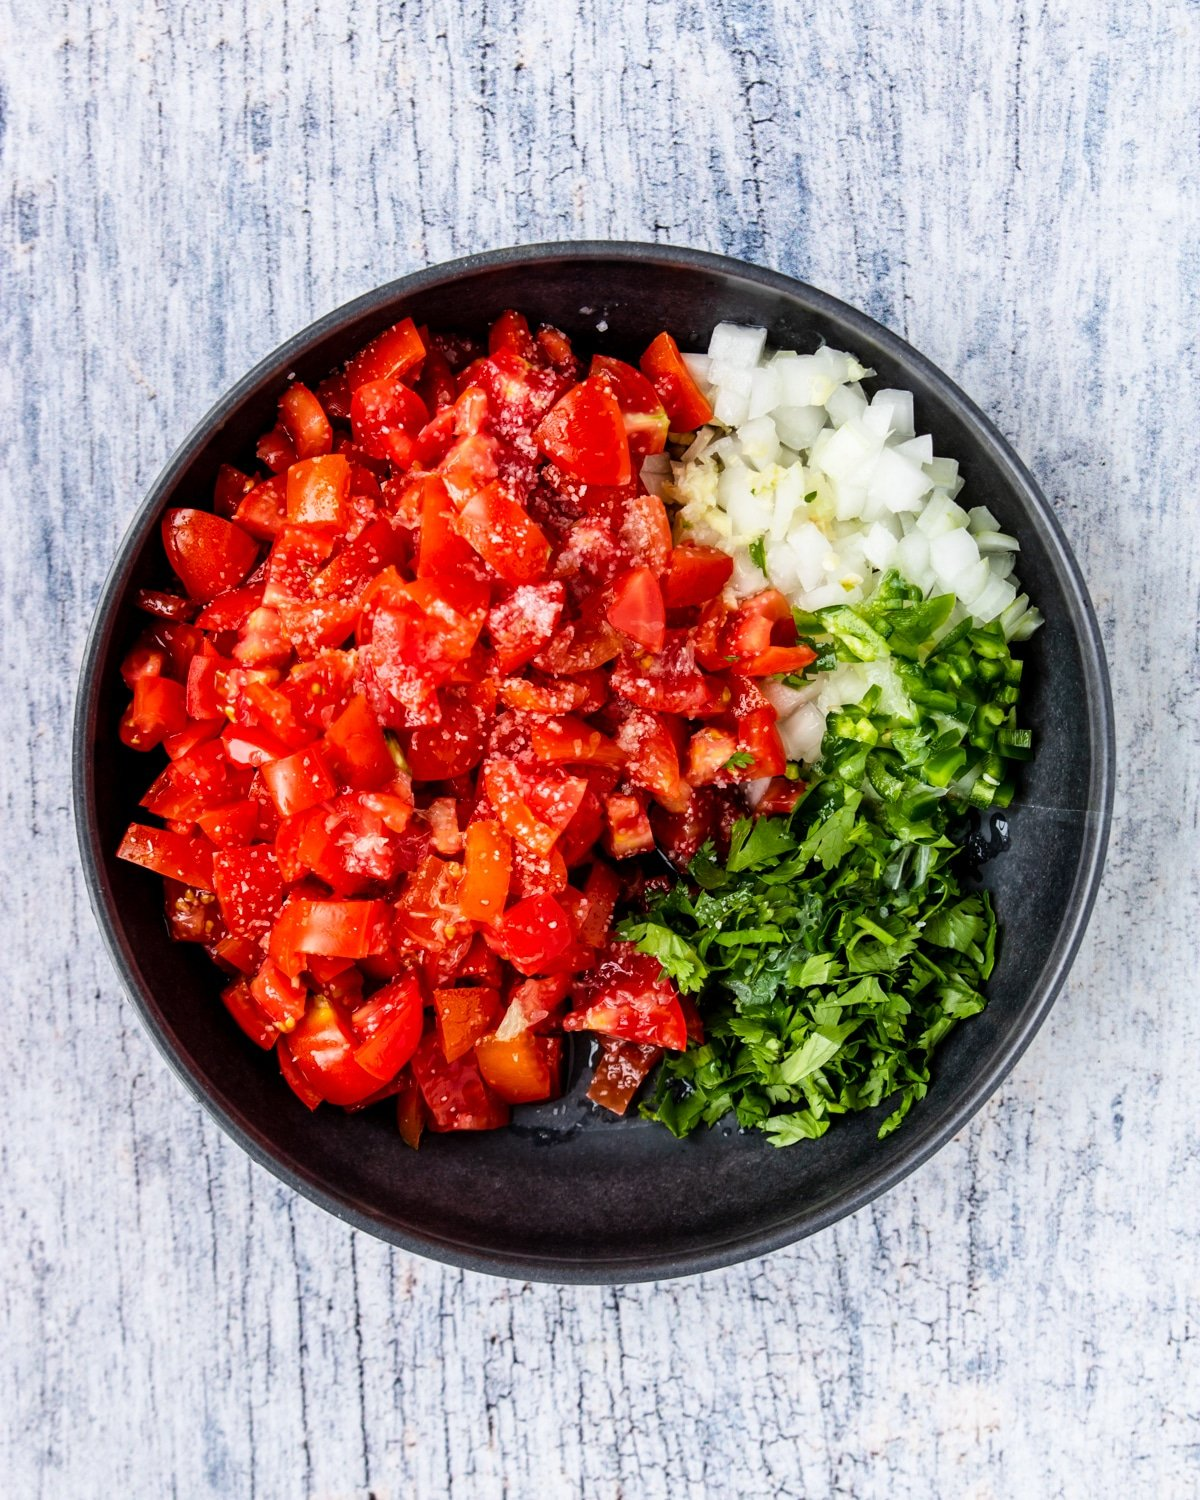 diced tomatoes, jalapenos, onion, cilantro, garlic and salt in a bowl